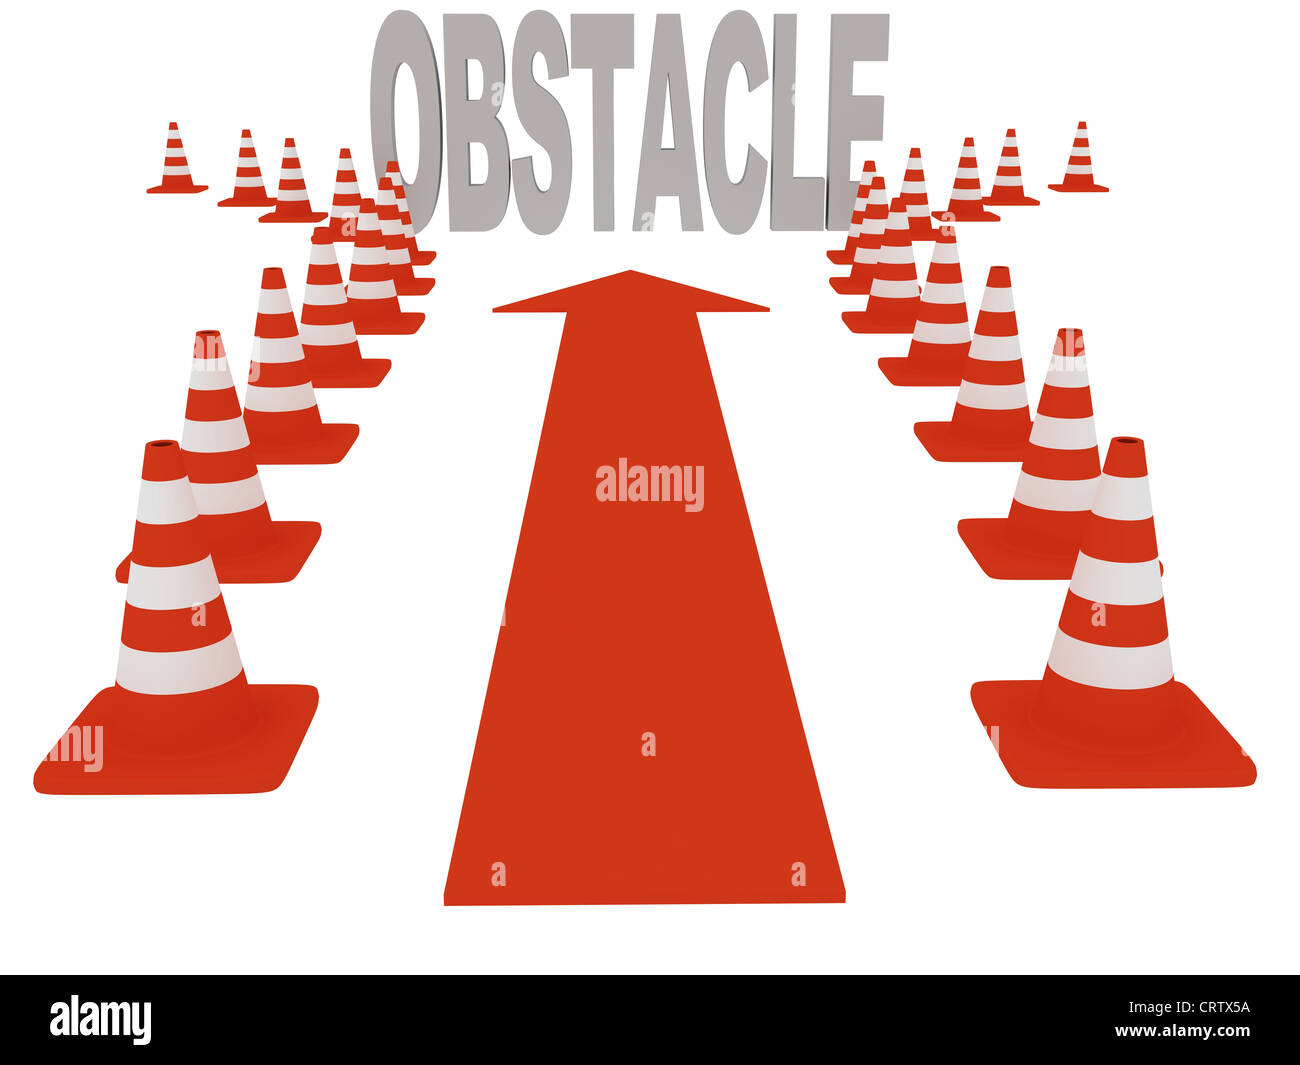 Overcoming obstacles - Stock Image